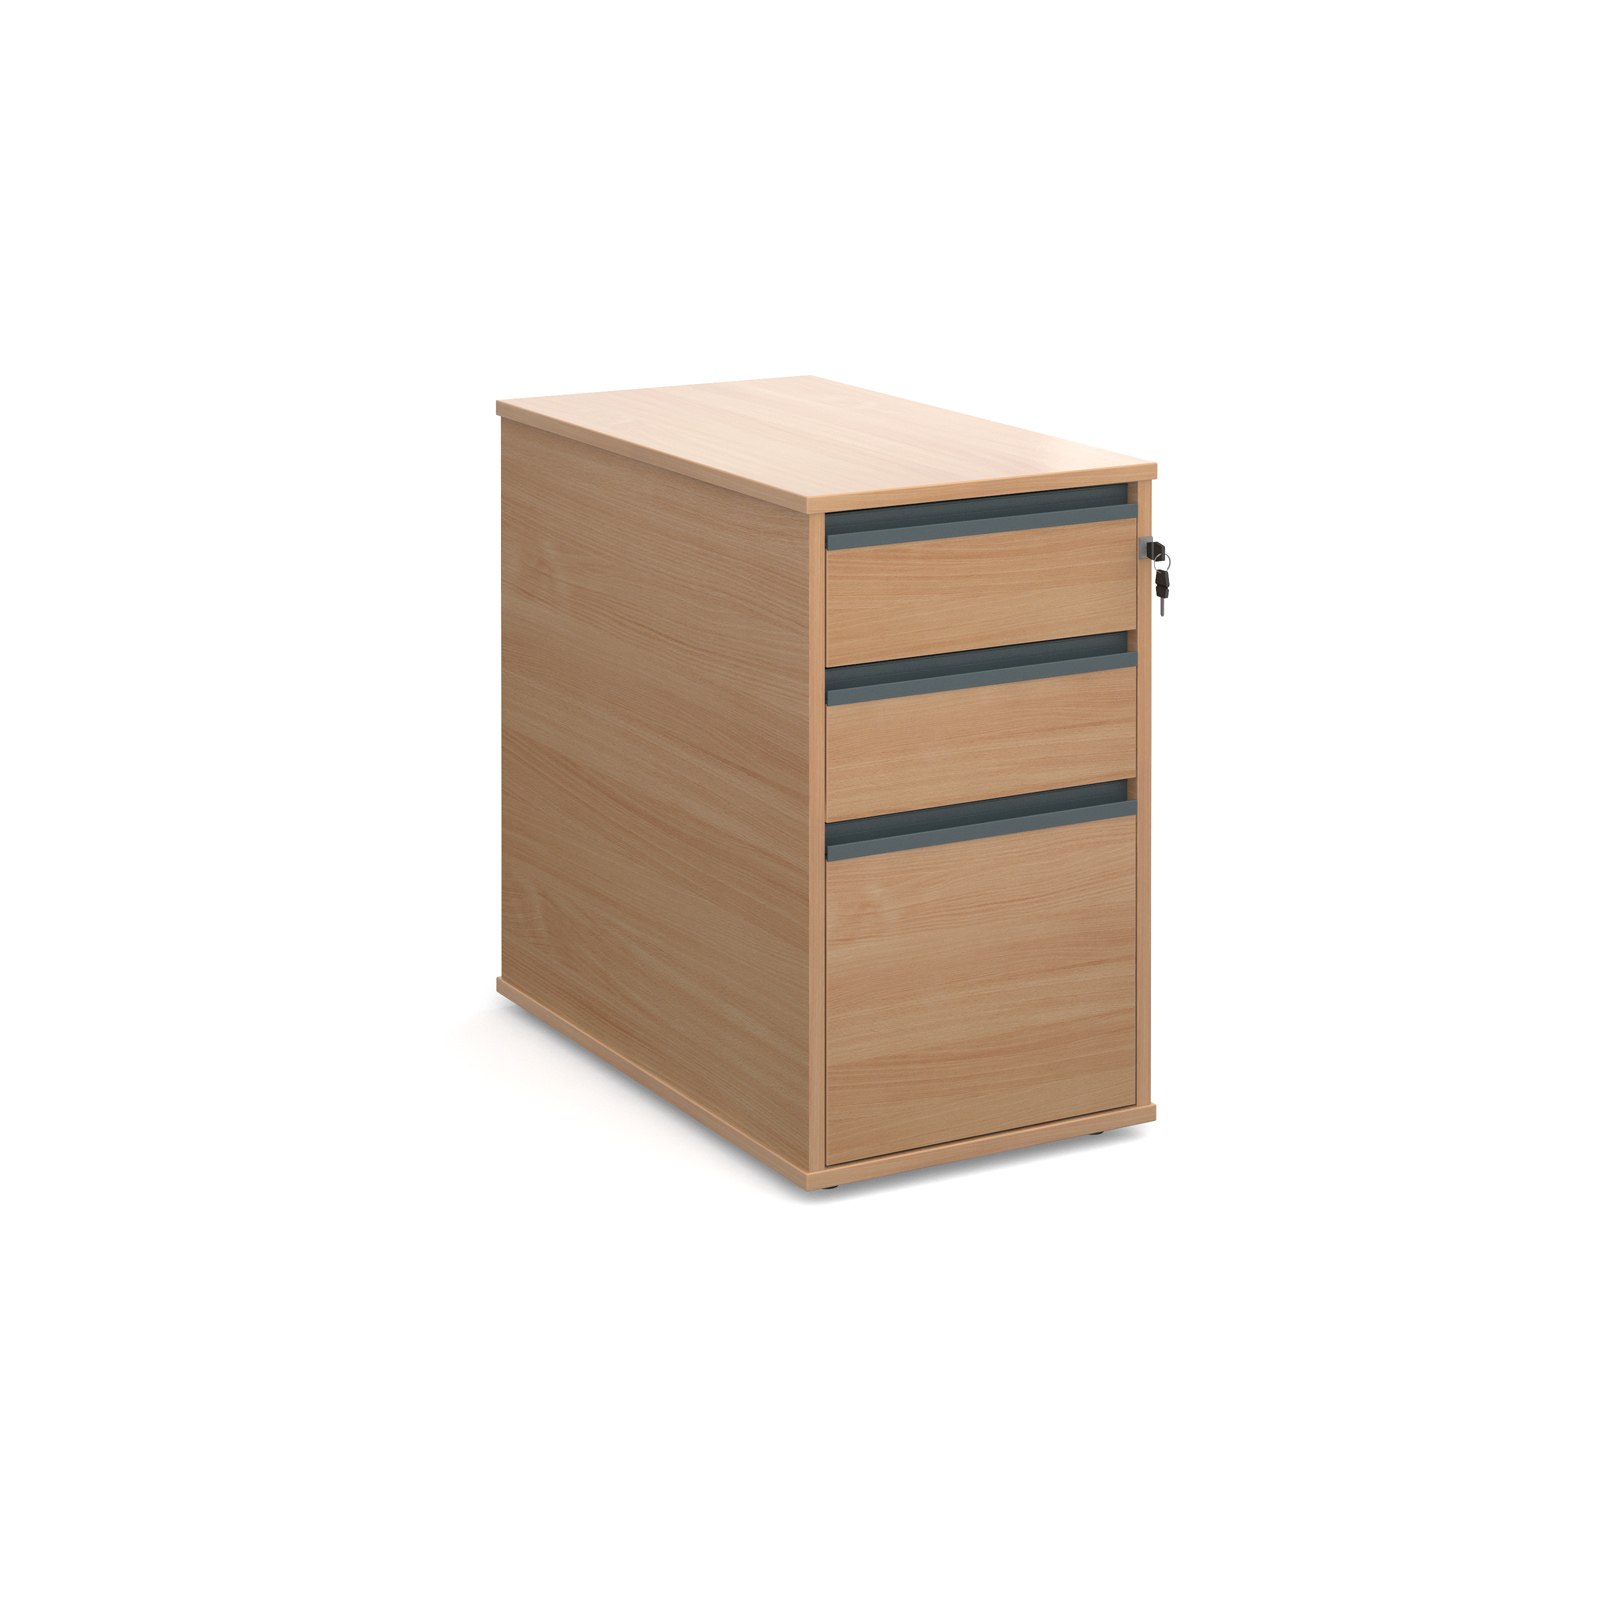 3 Drw Desk End Ped 746mm - Beech